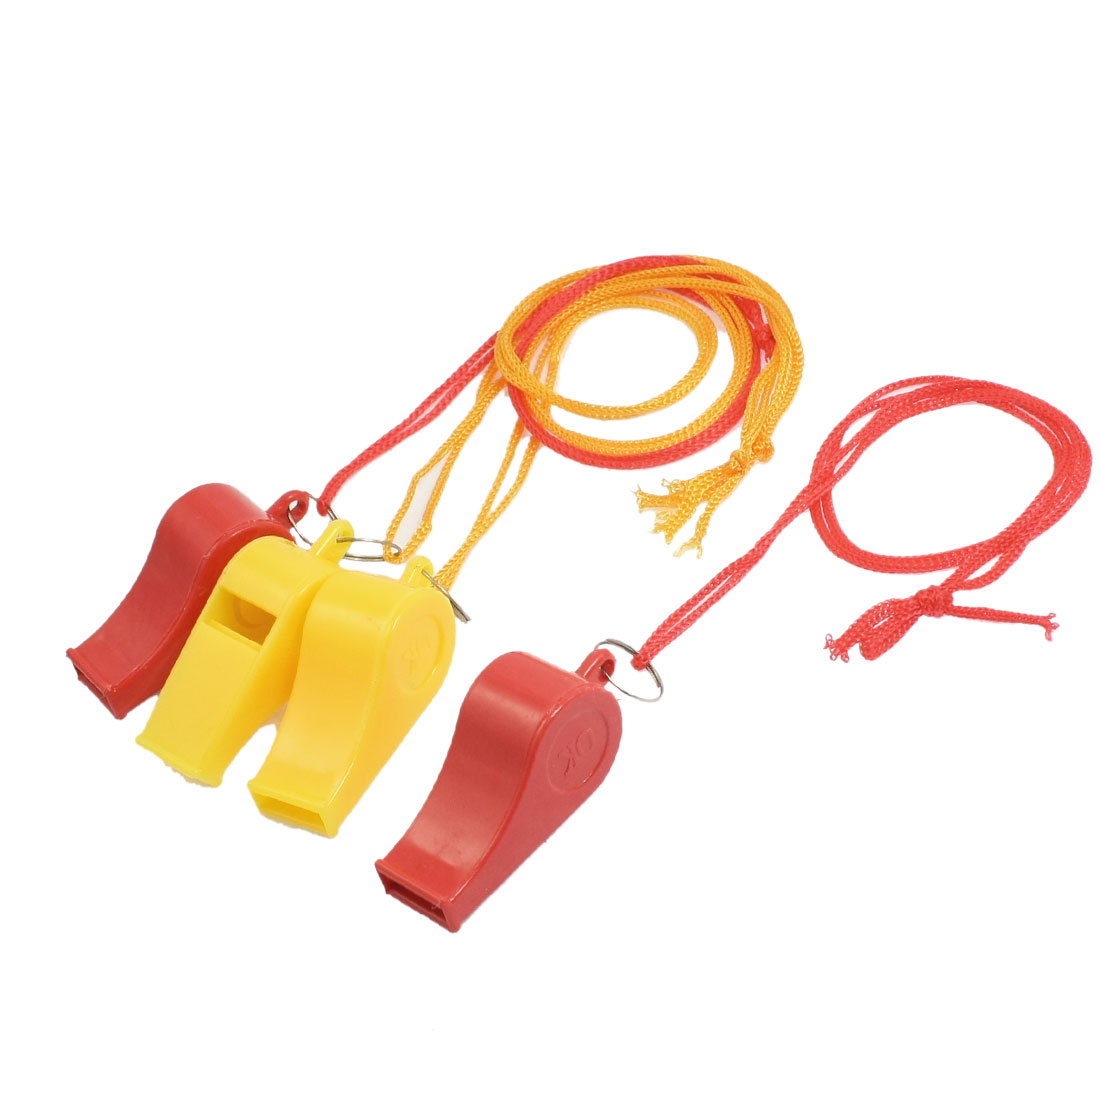 4 Pcs Nylon Strap Red Yellow Plastic Sports Game Match Referee Whistle Toy